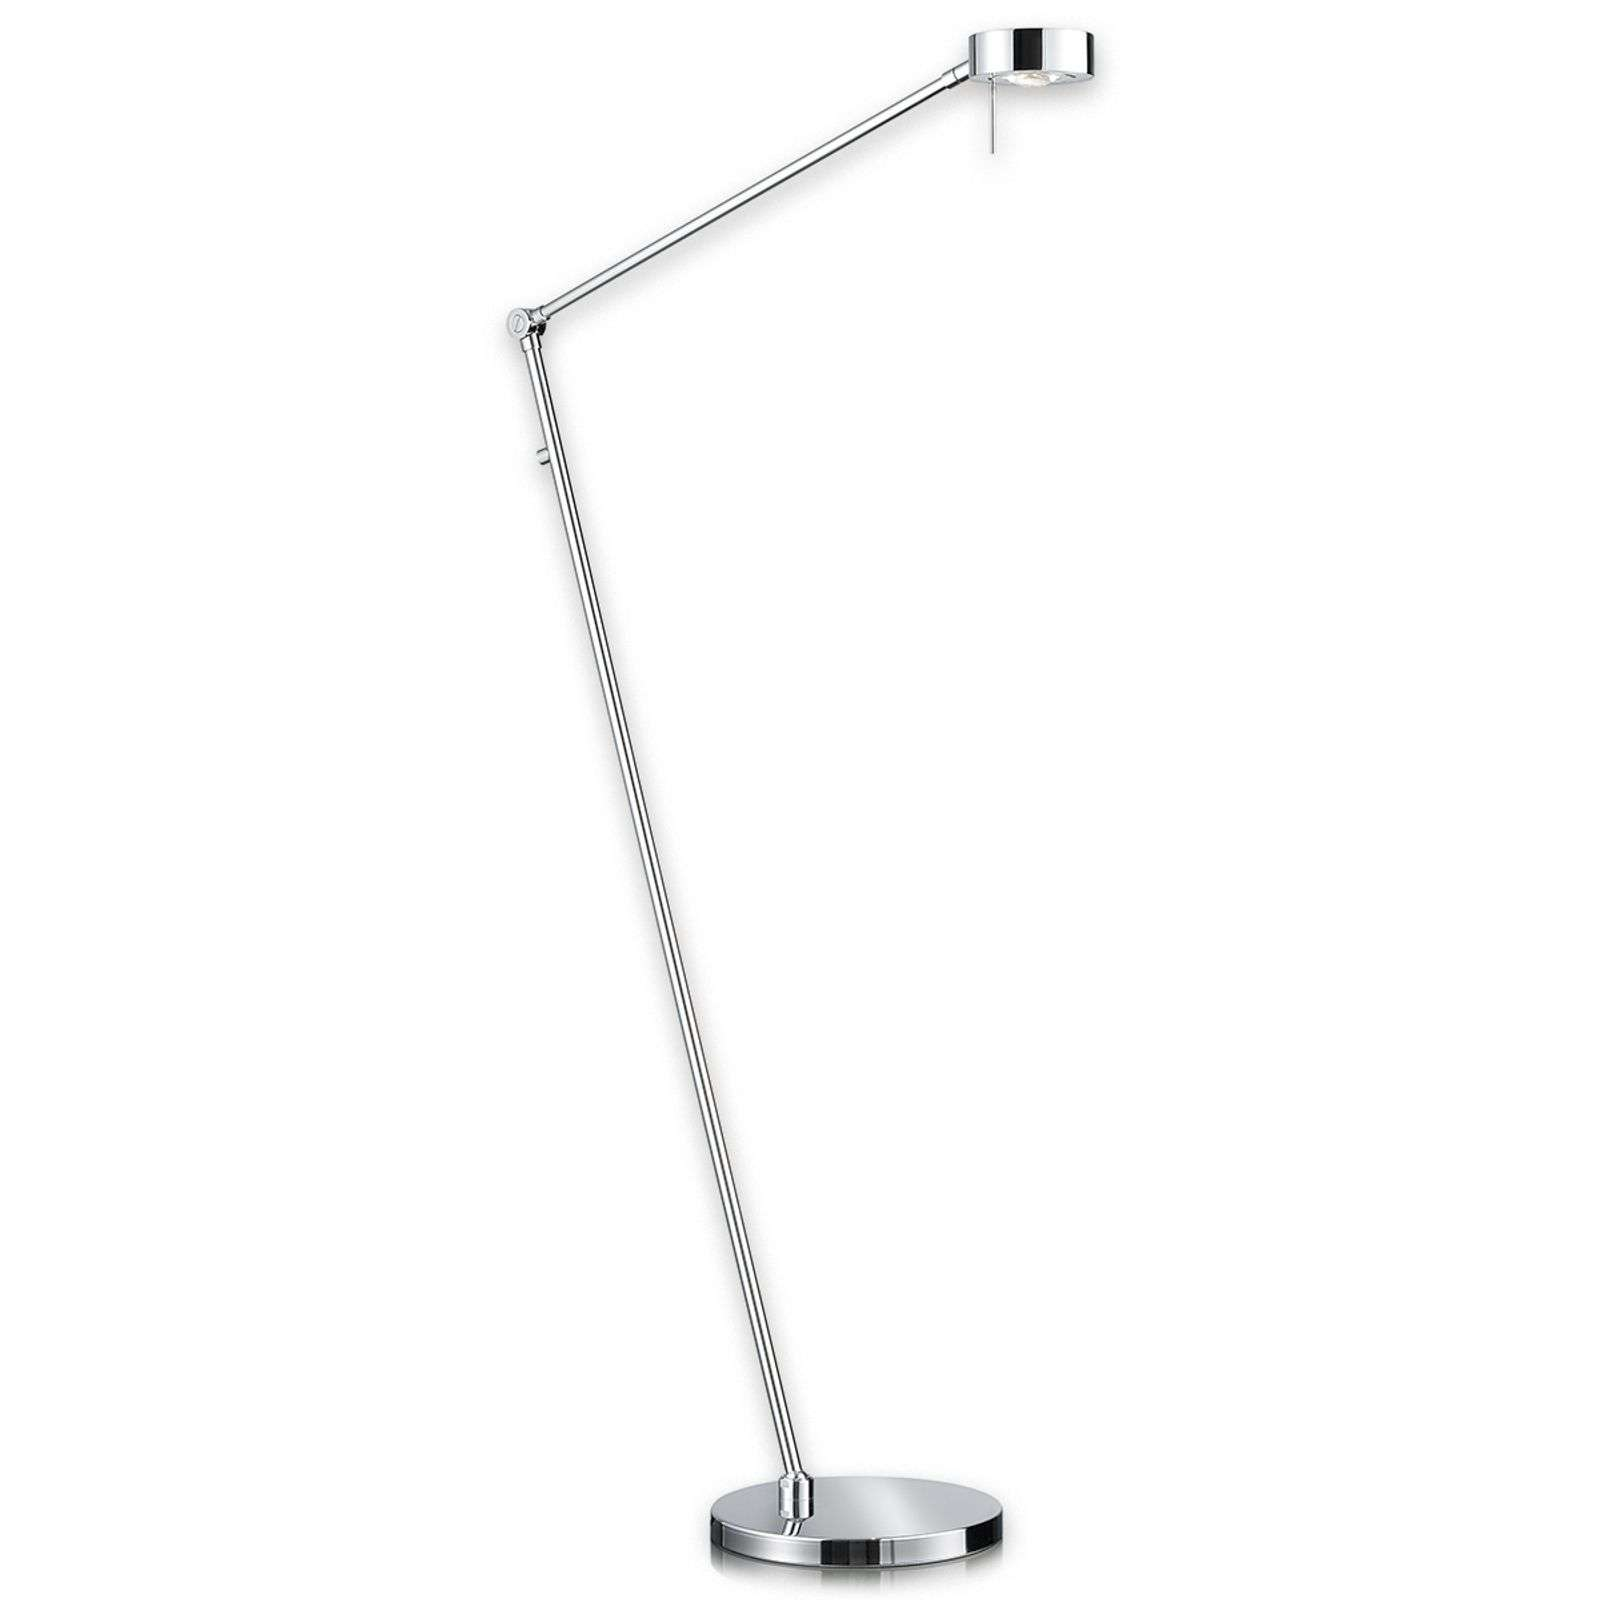 Lampadaire LED Elegance filiforme aspect chromé